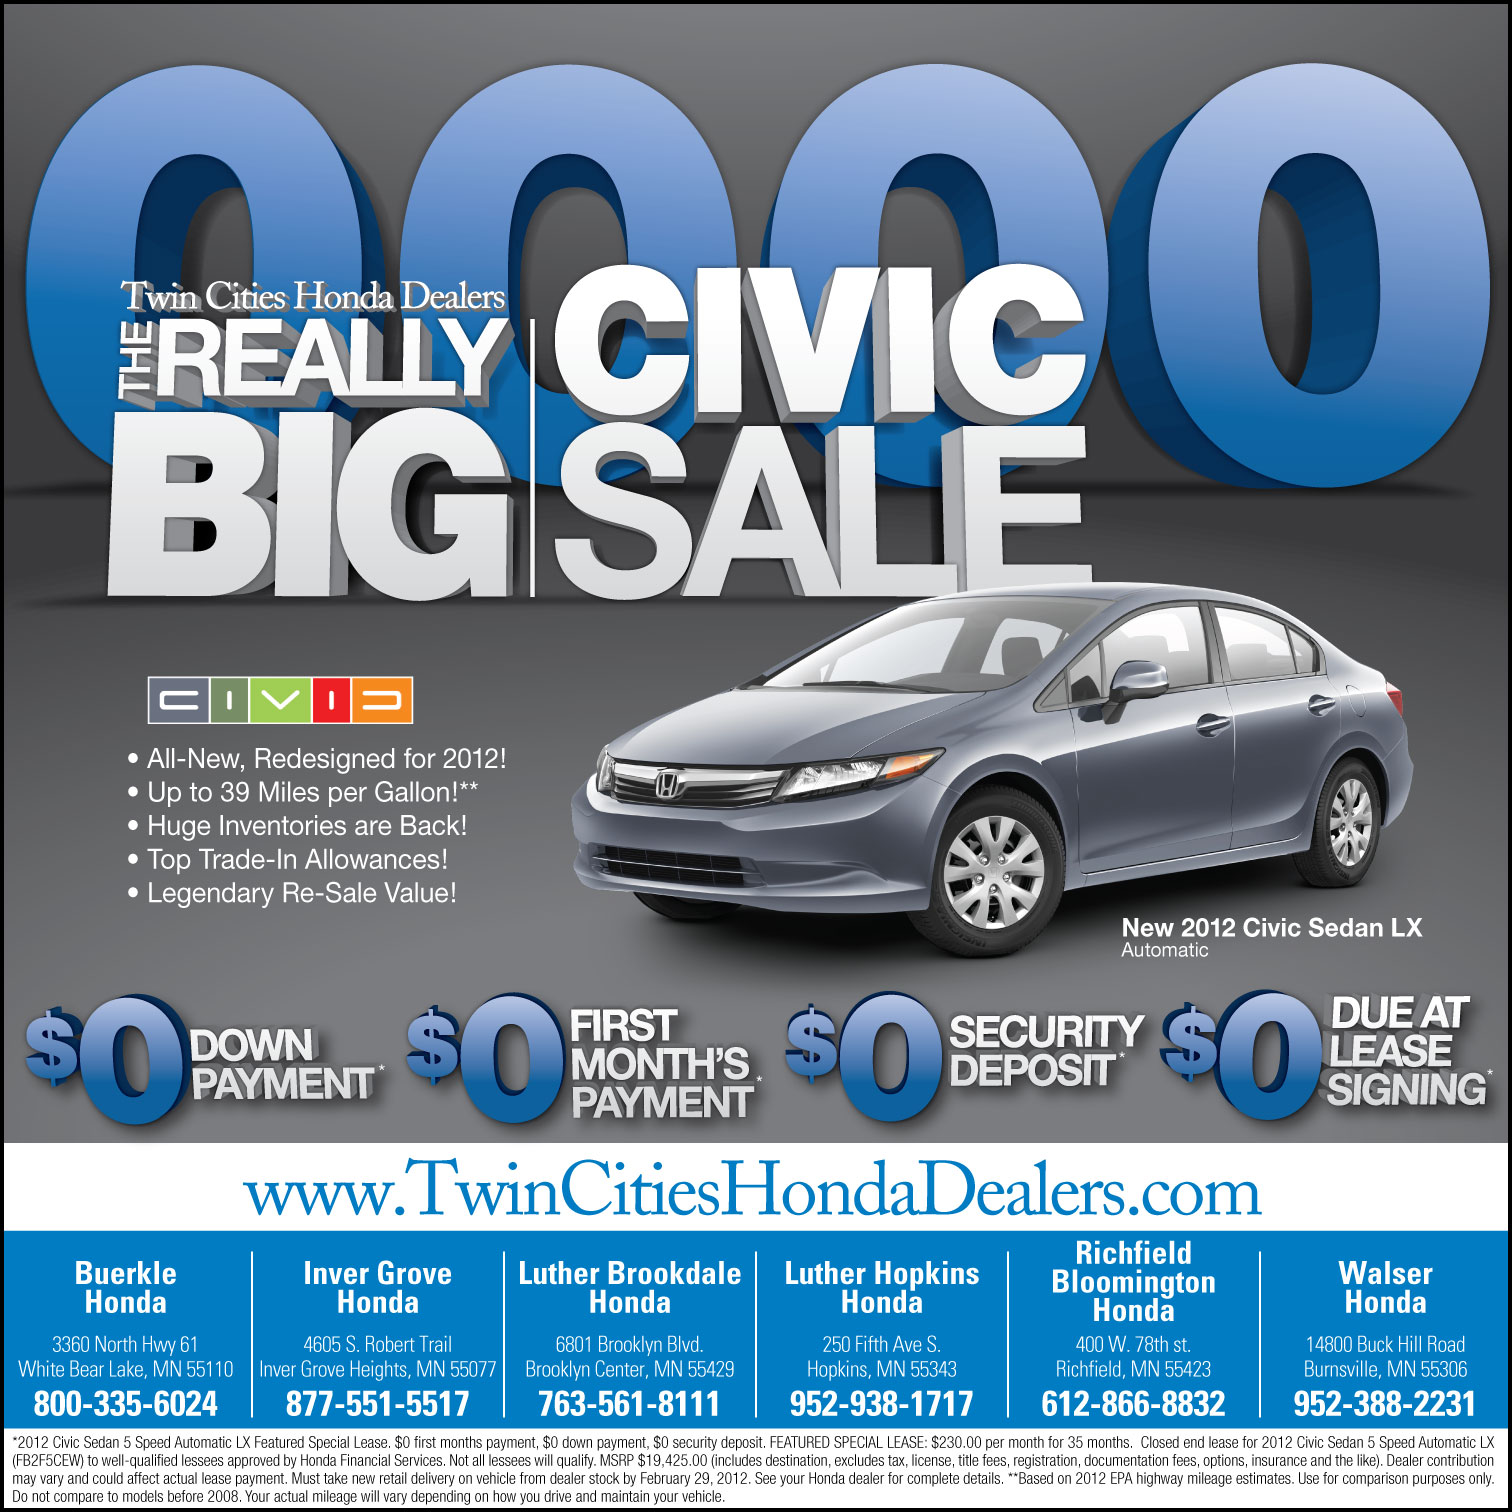 twin cities honda dealers big civic sale by tlsivart on